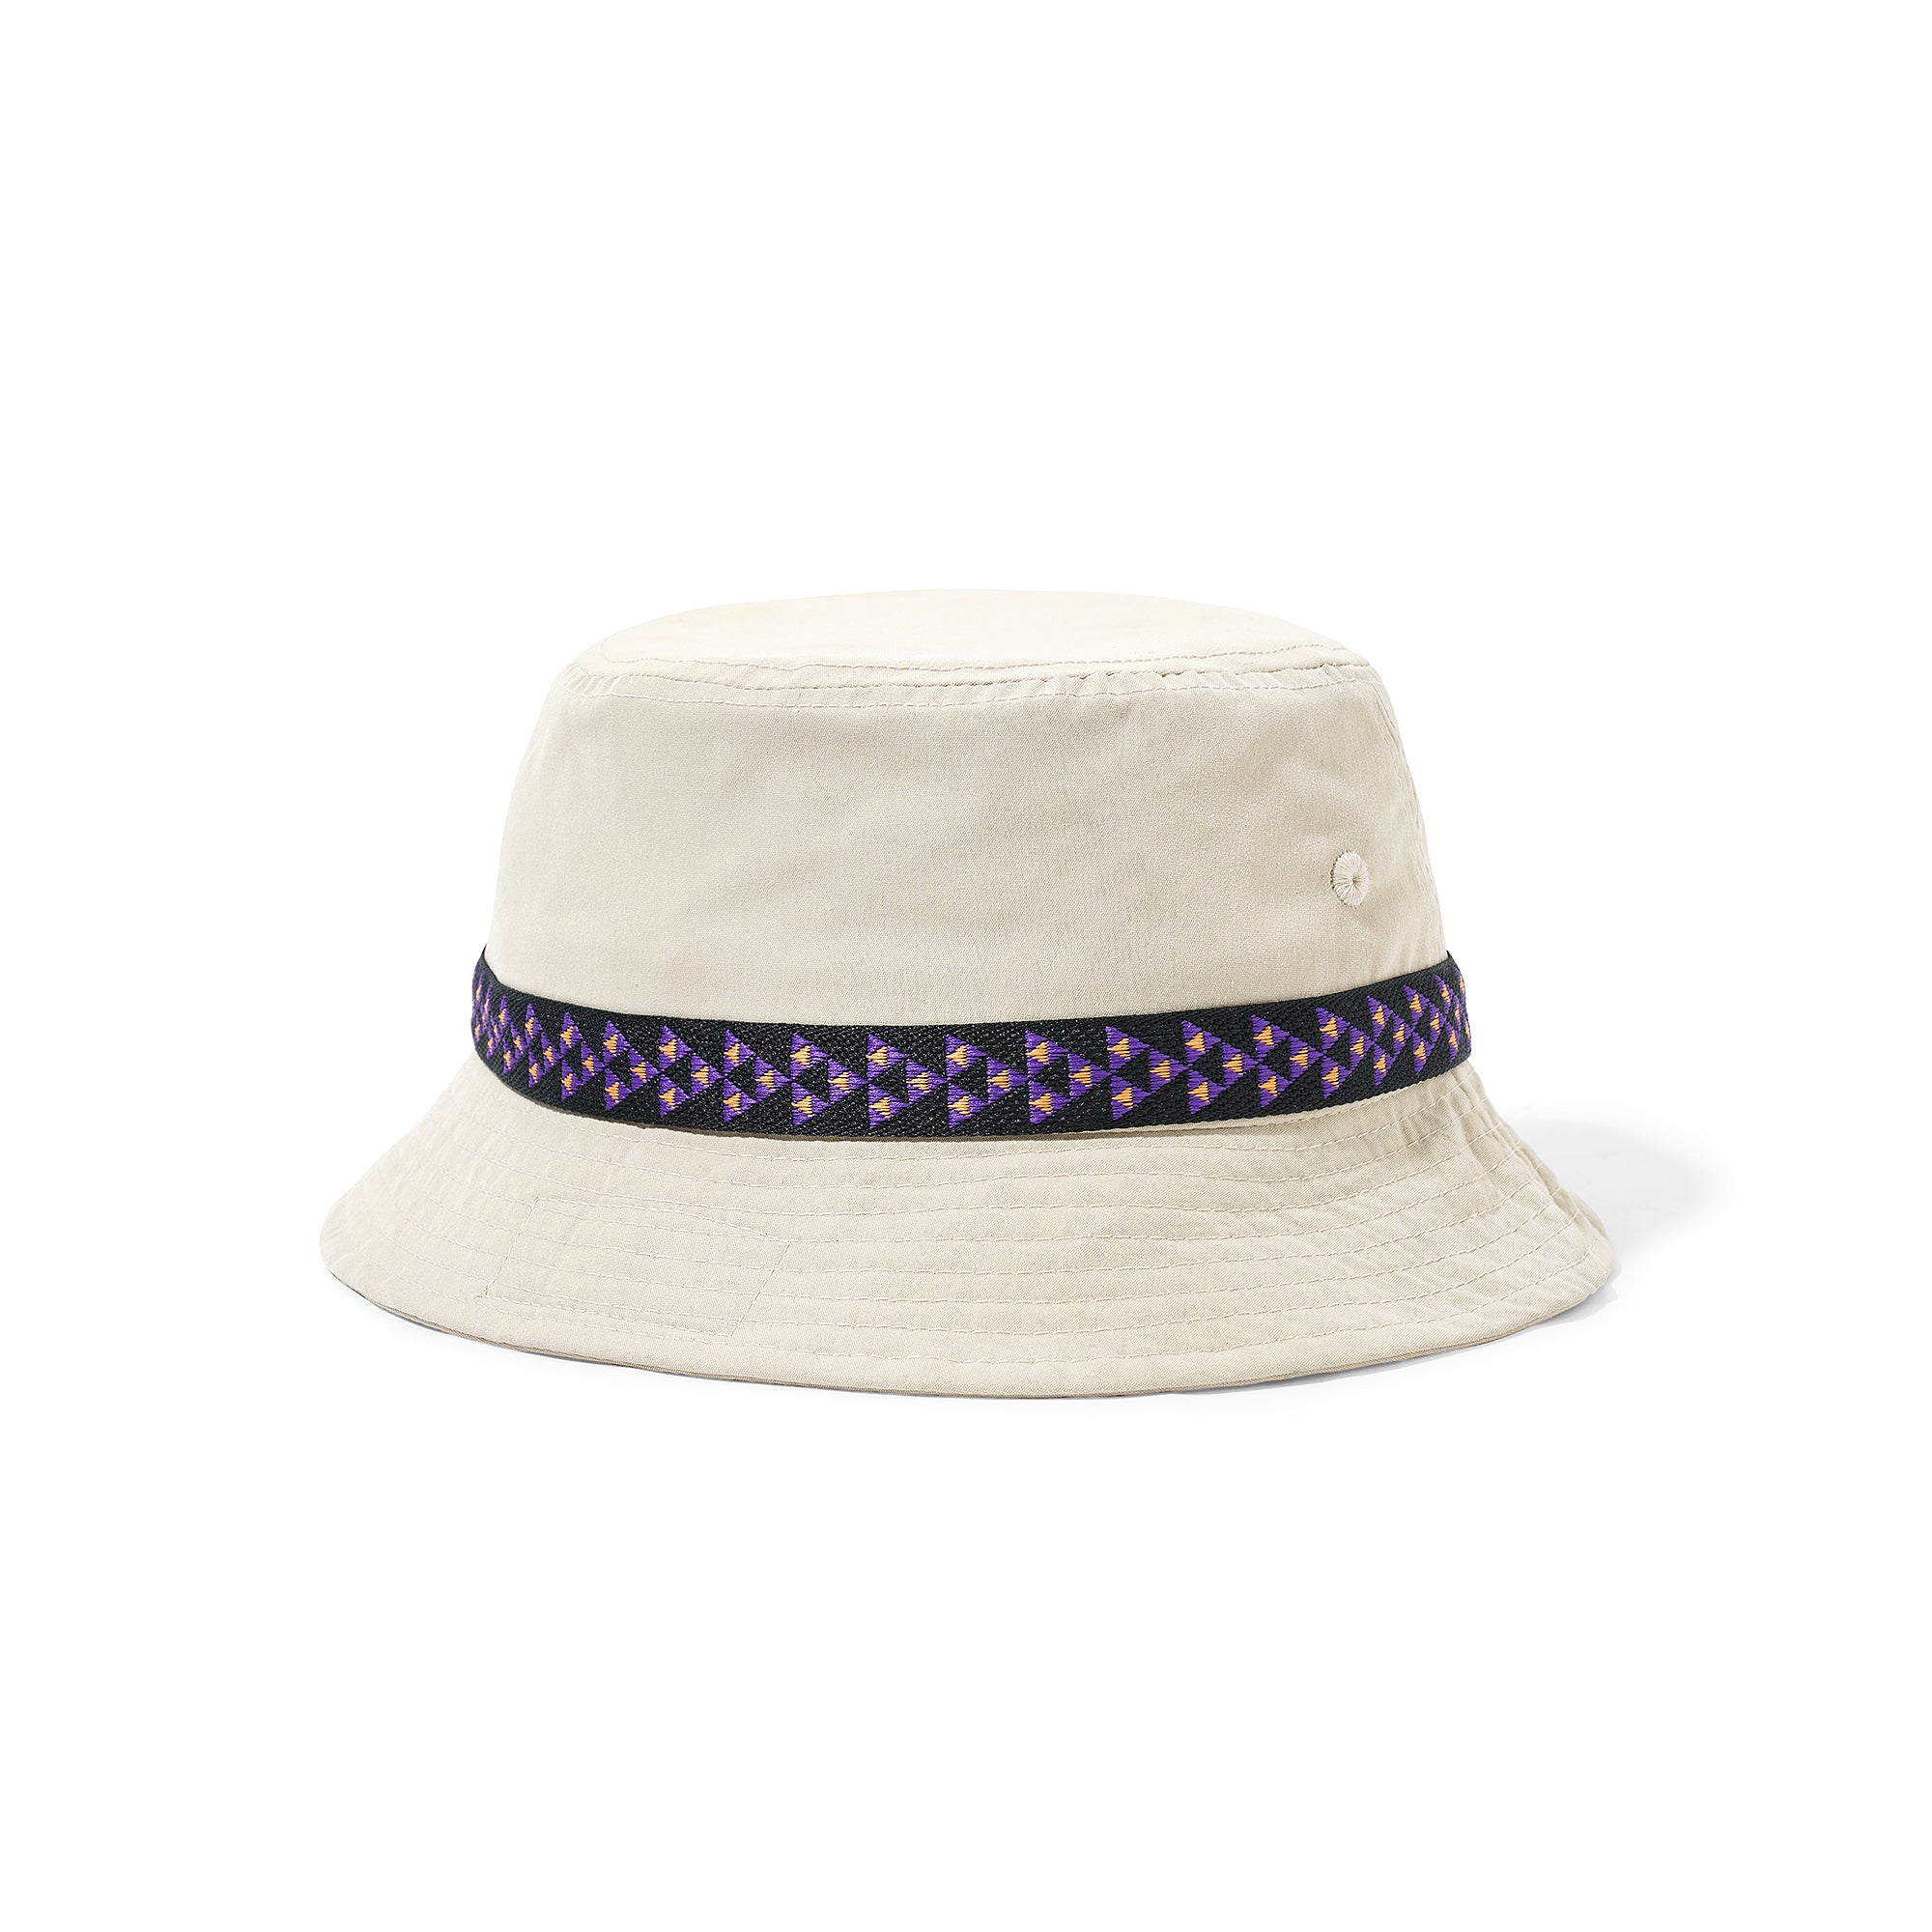 Butter Goods Equipment Bucket Hat Product Photo #1